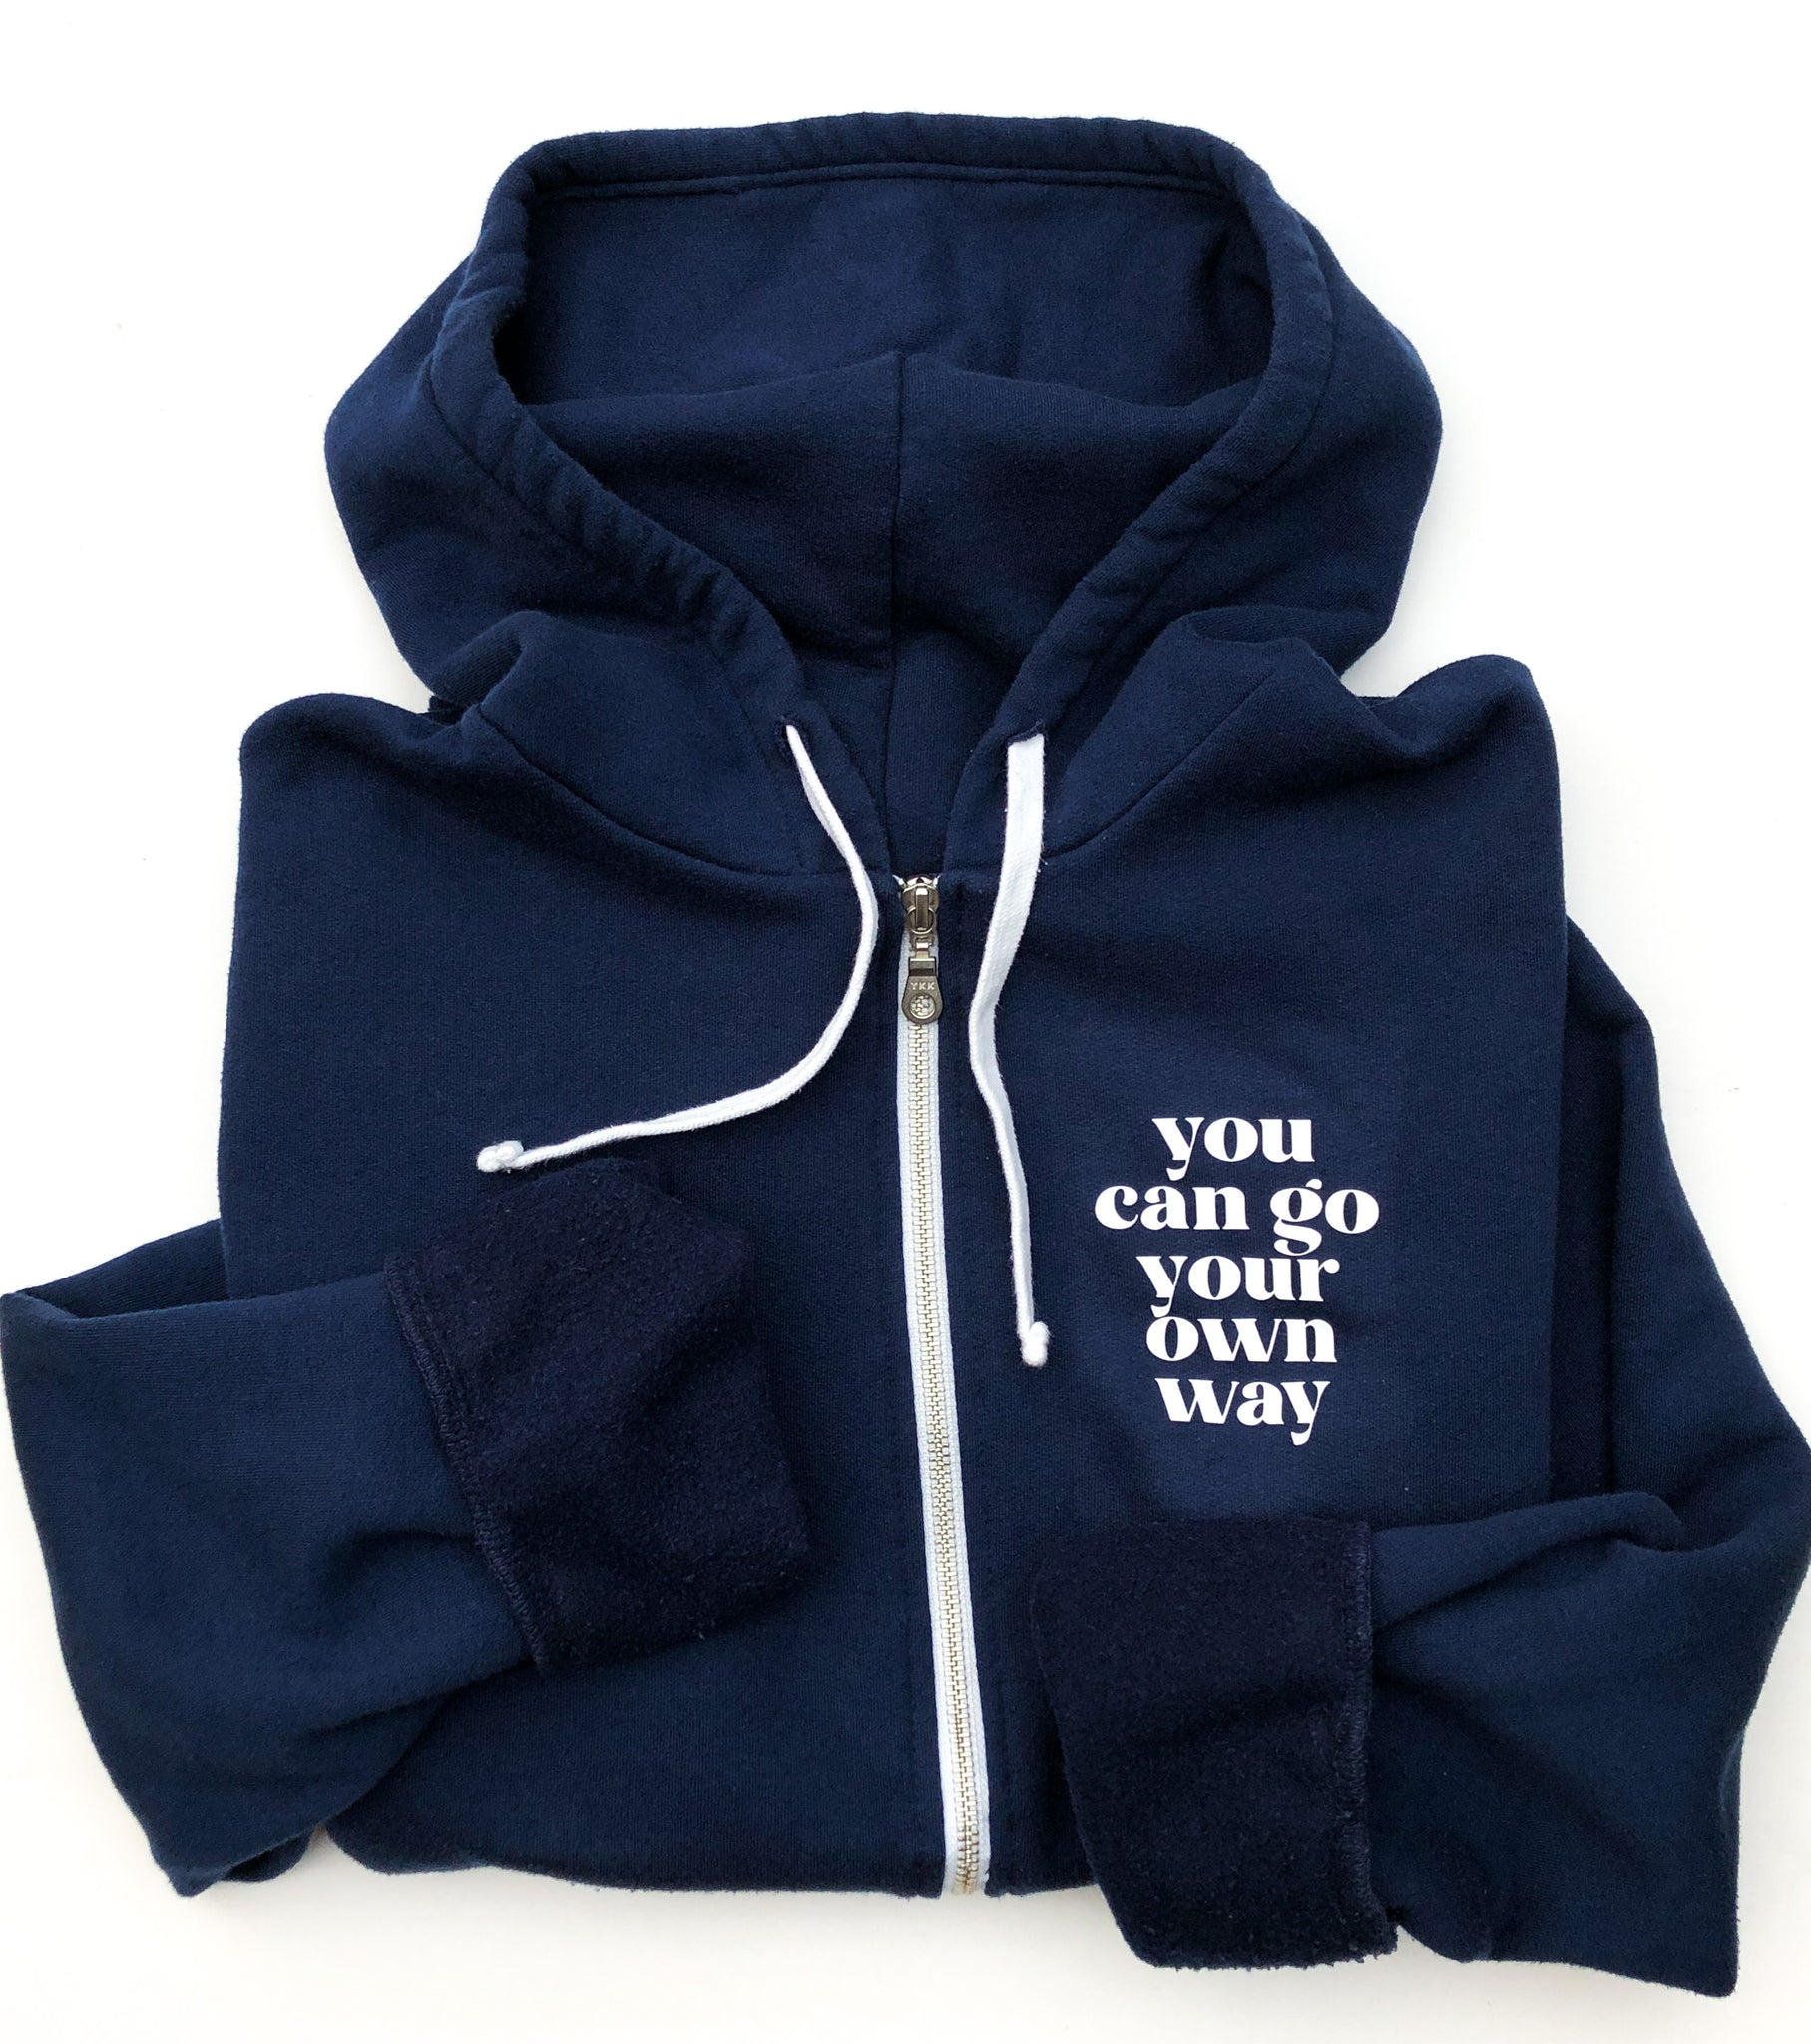 Go Your Own Way Retro Navy Hoodie